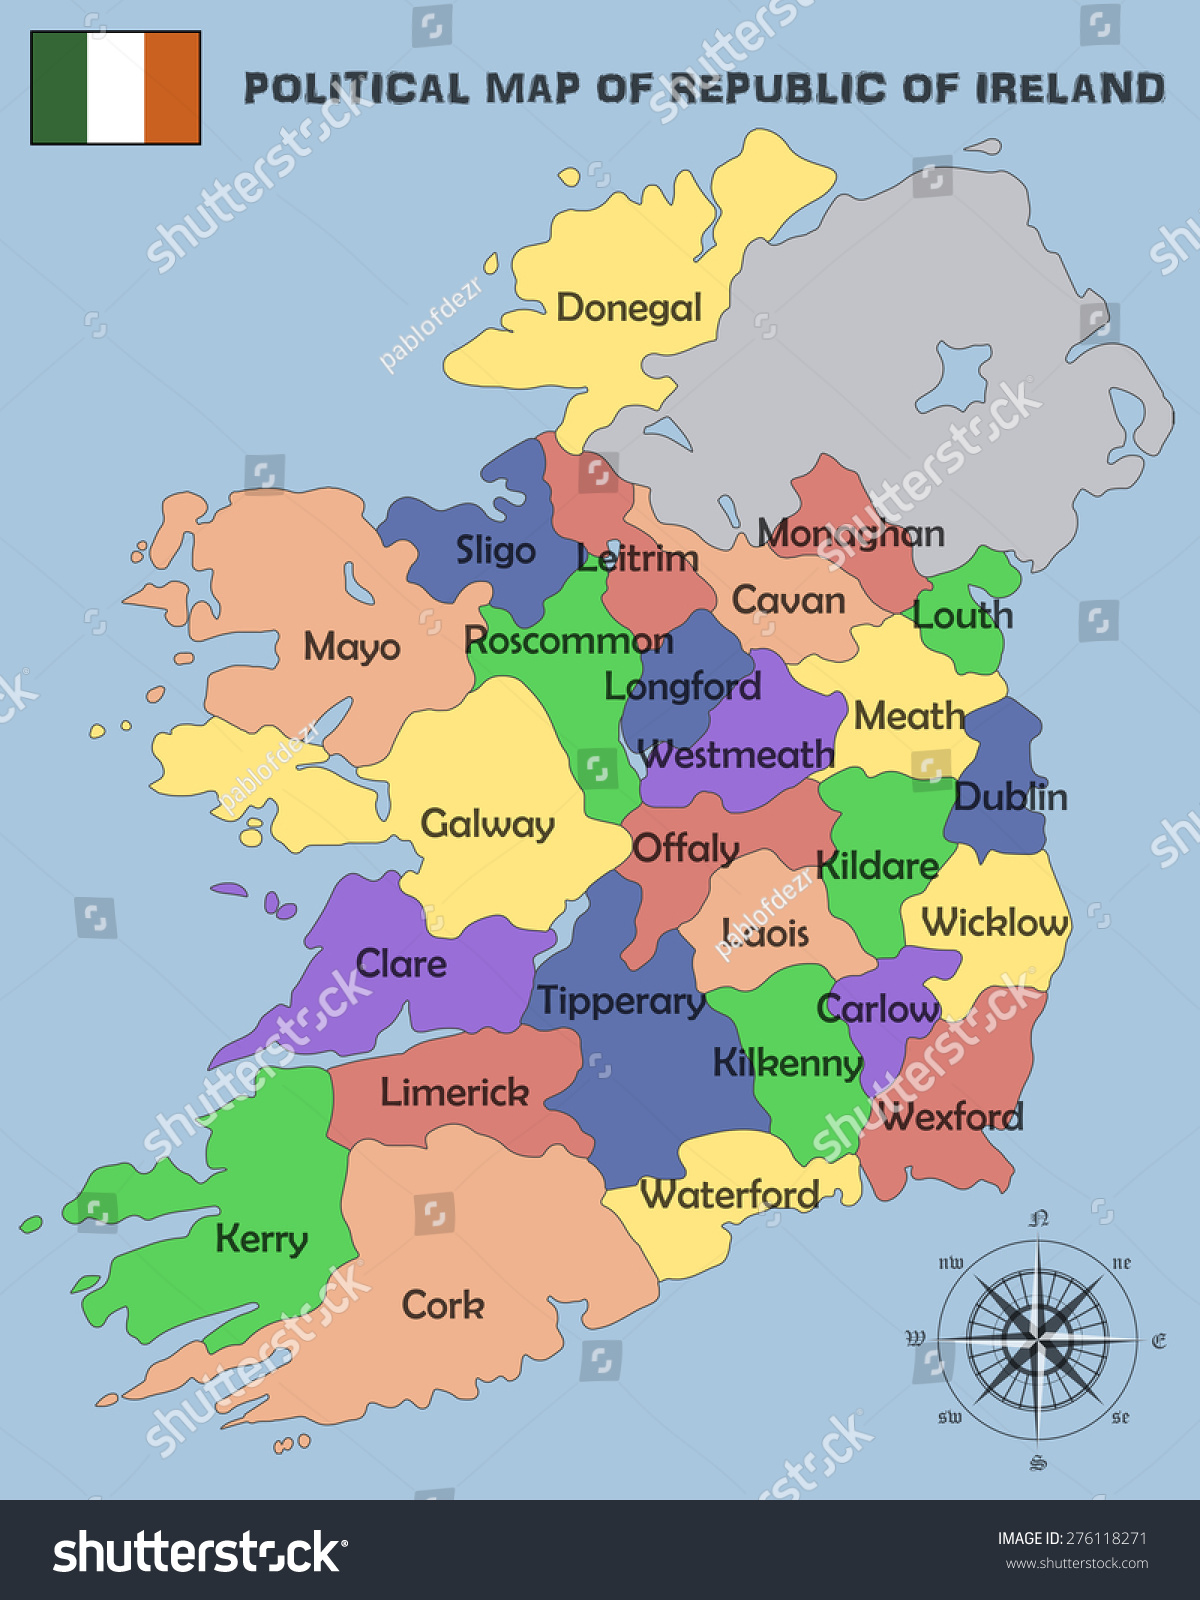 Political map republic ireland stock vector 276118271 shutterstock gumiabroncs Image collections